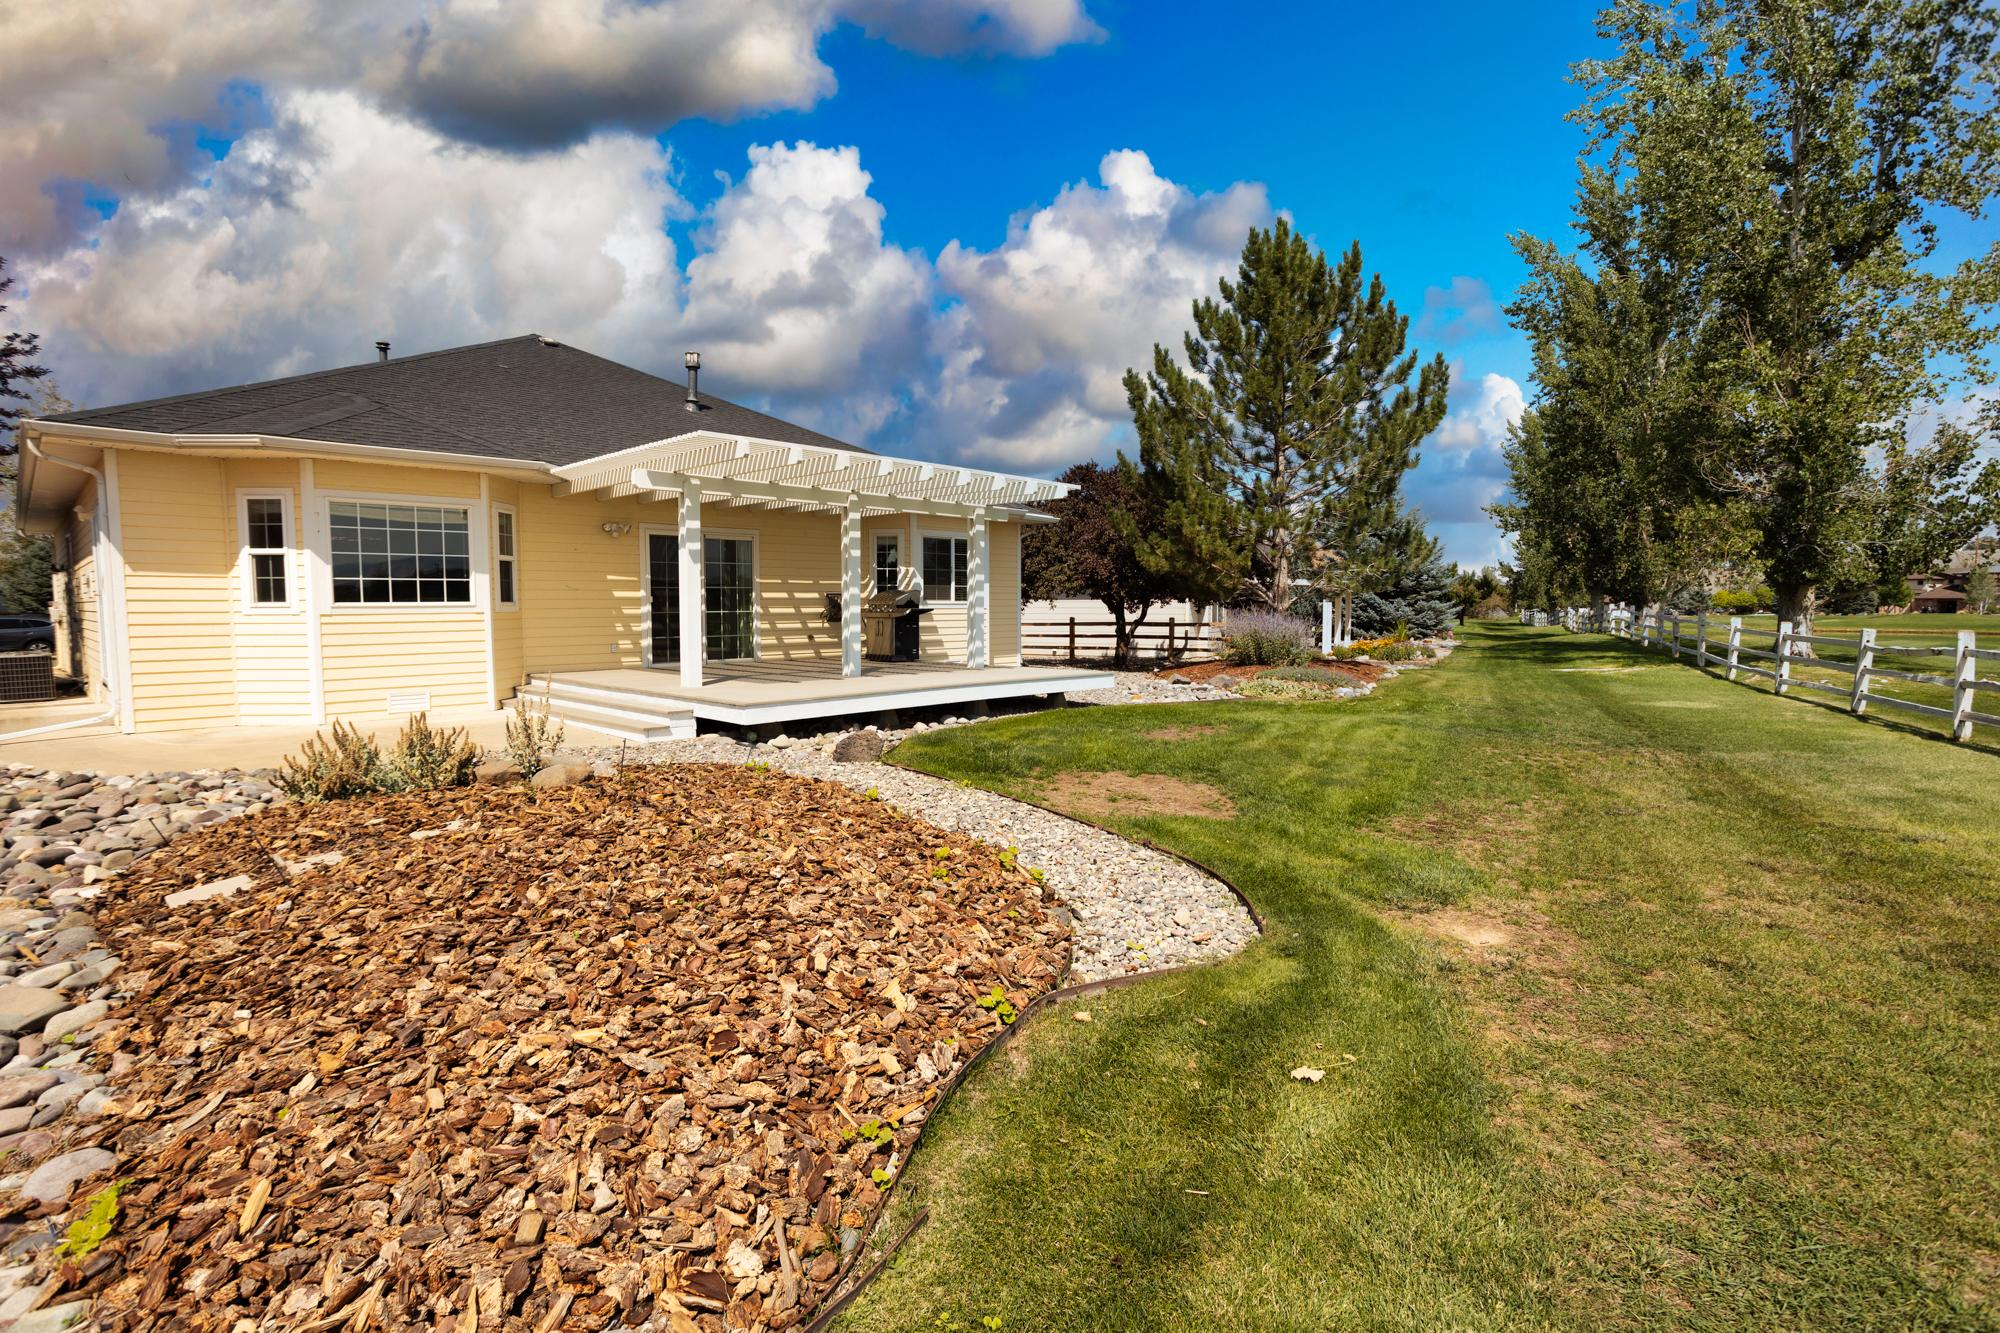 Back of Home and Patio - 3731 Buffalo Ln Montrose, CO 81403 - Atha Team Golf Property